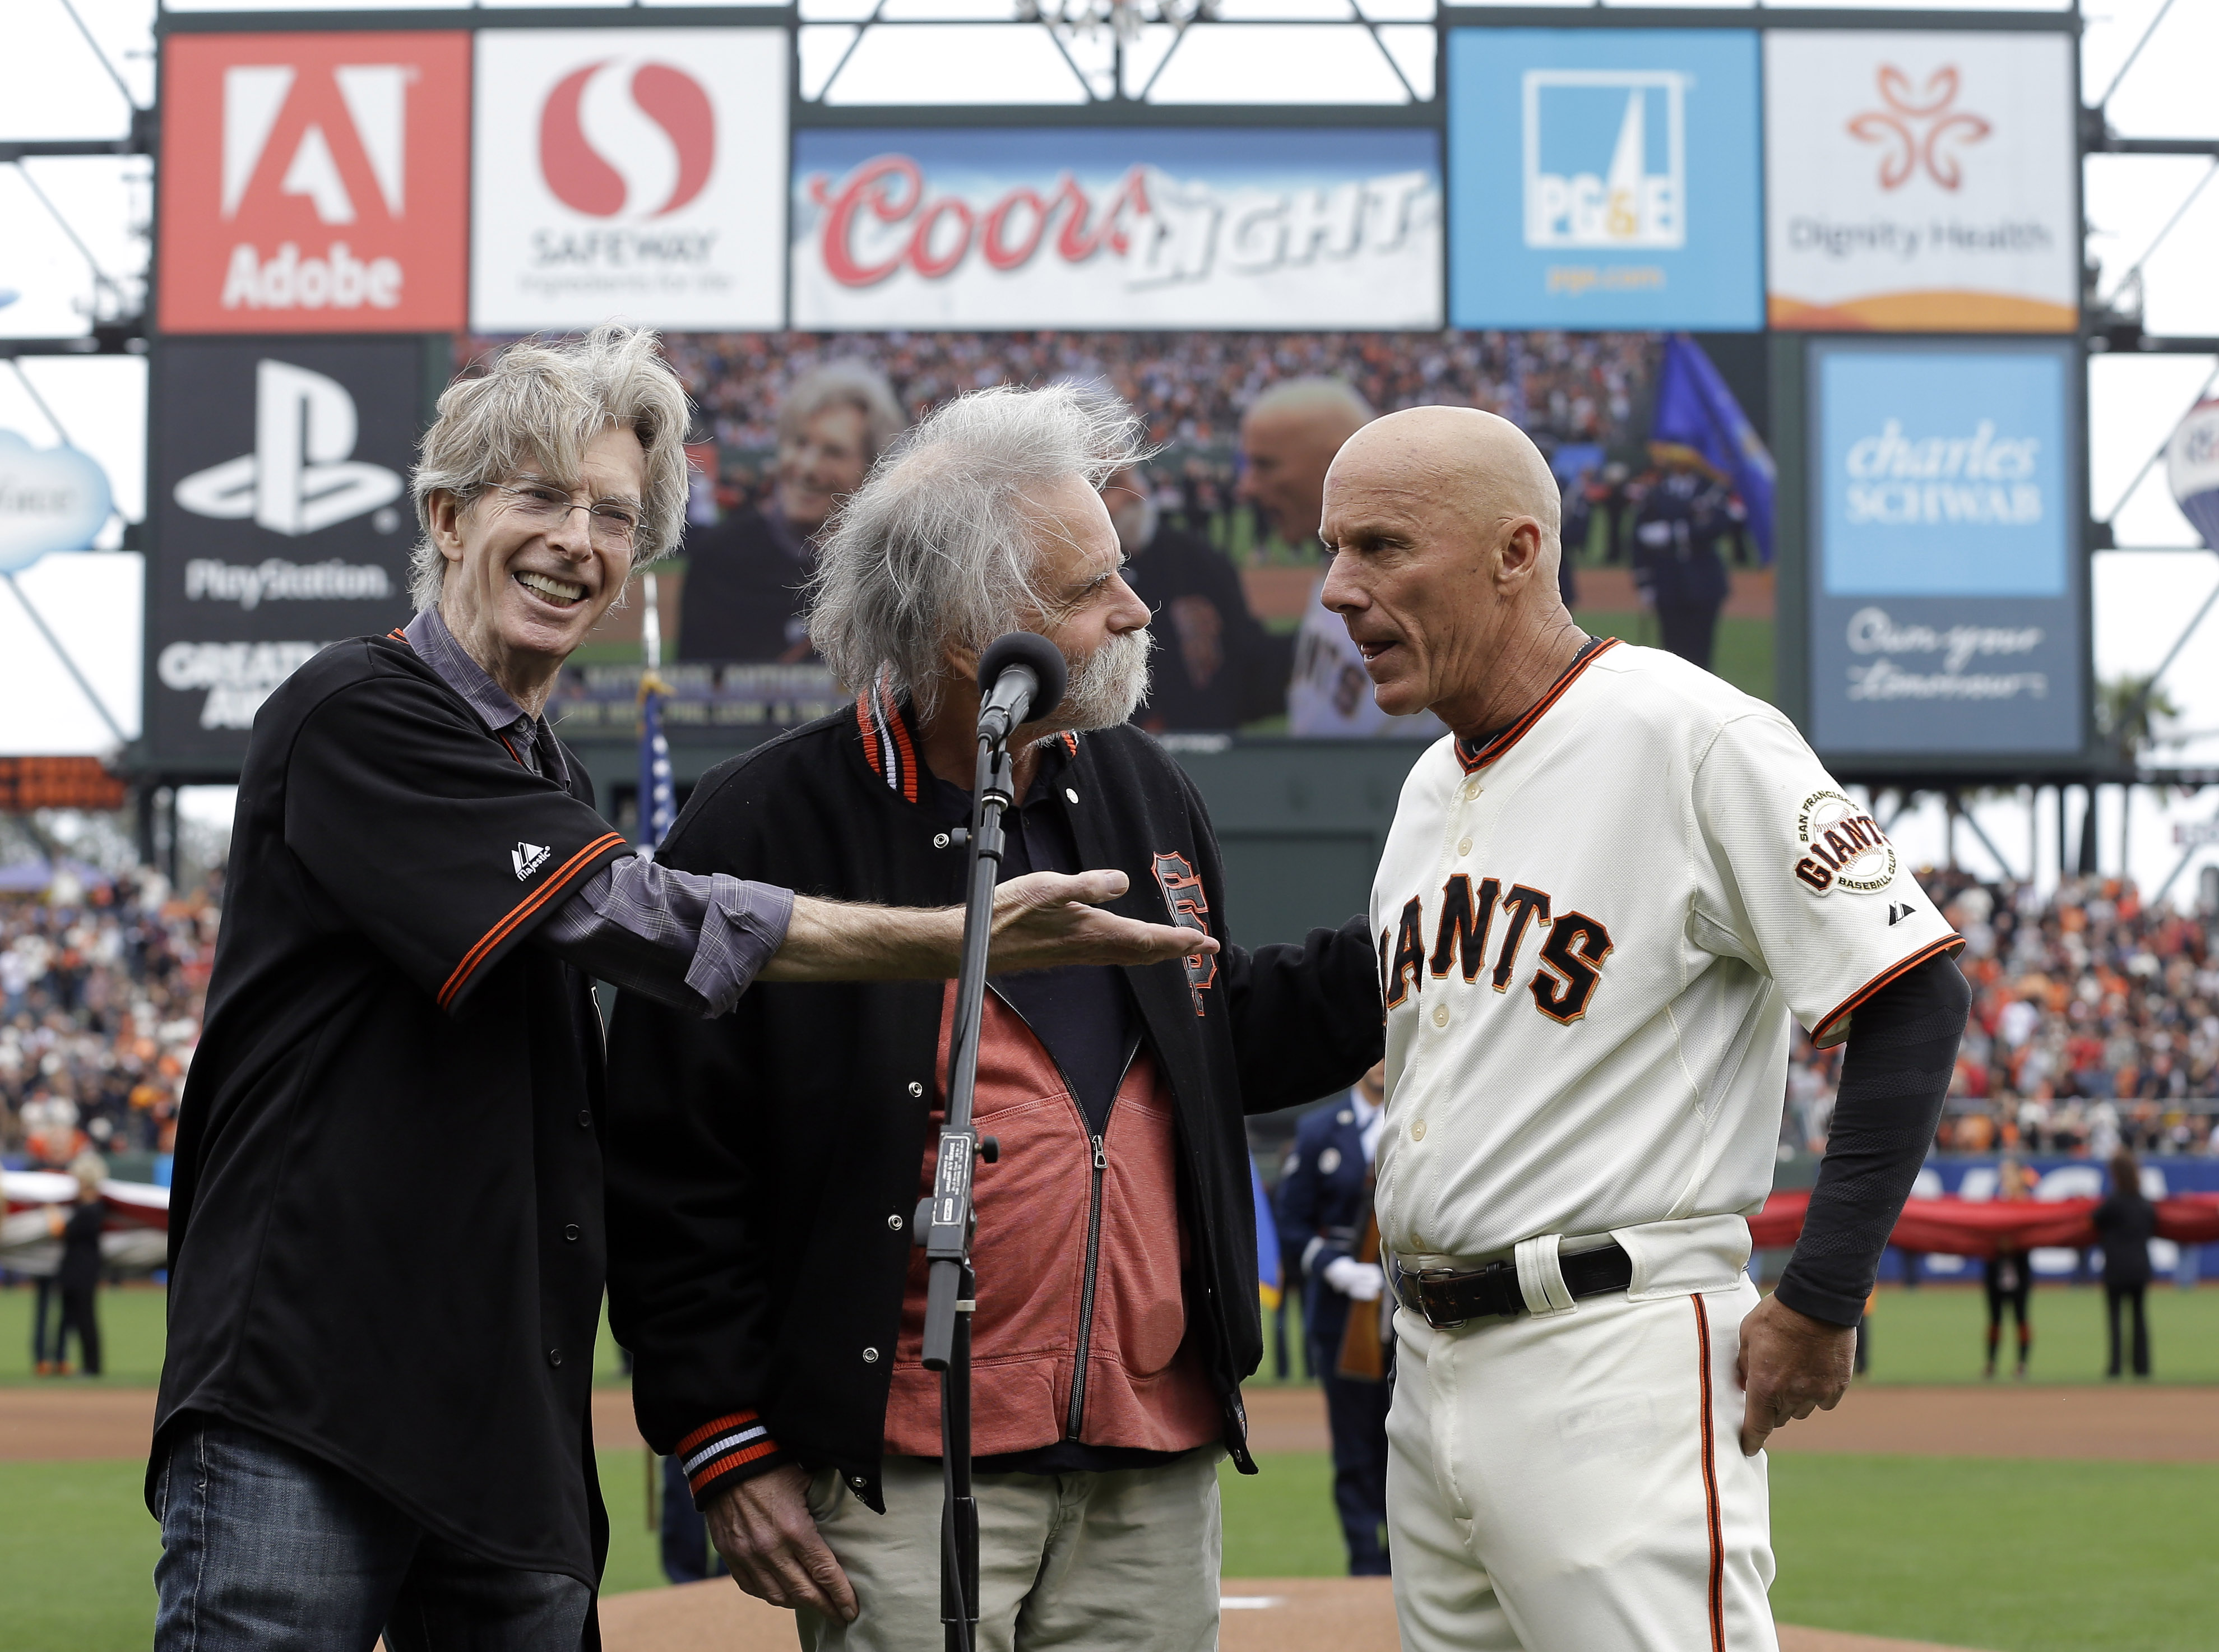 Tim Flannery (far right) joins the Grateful Dead's Phil Lesh, and Bob Weir for the national anthem. (AP)